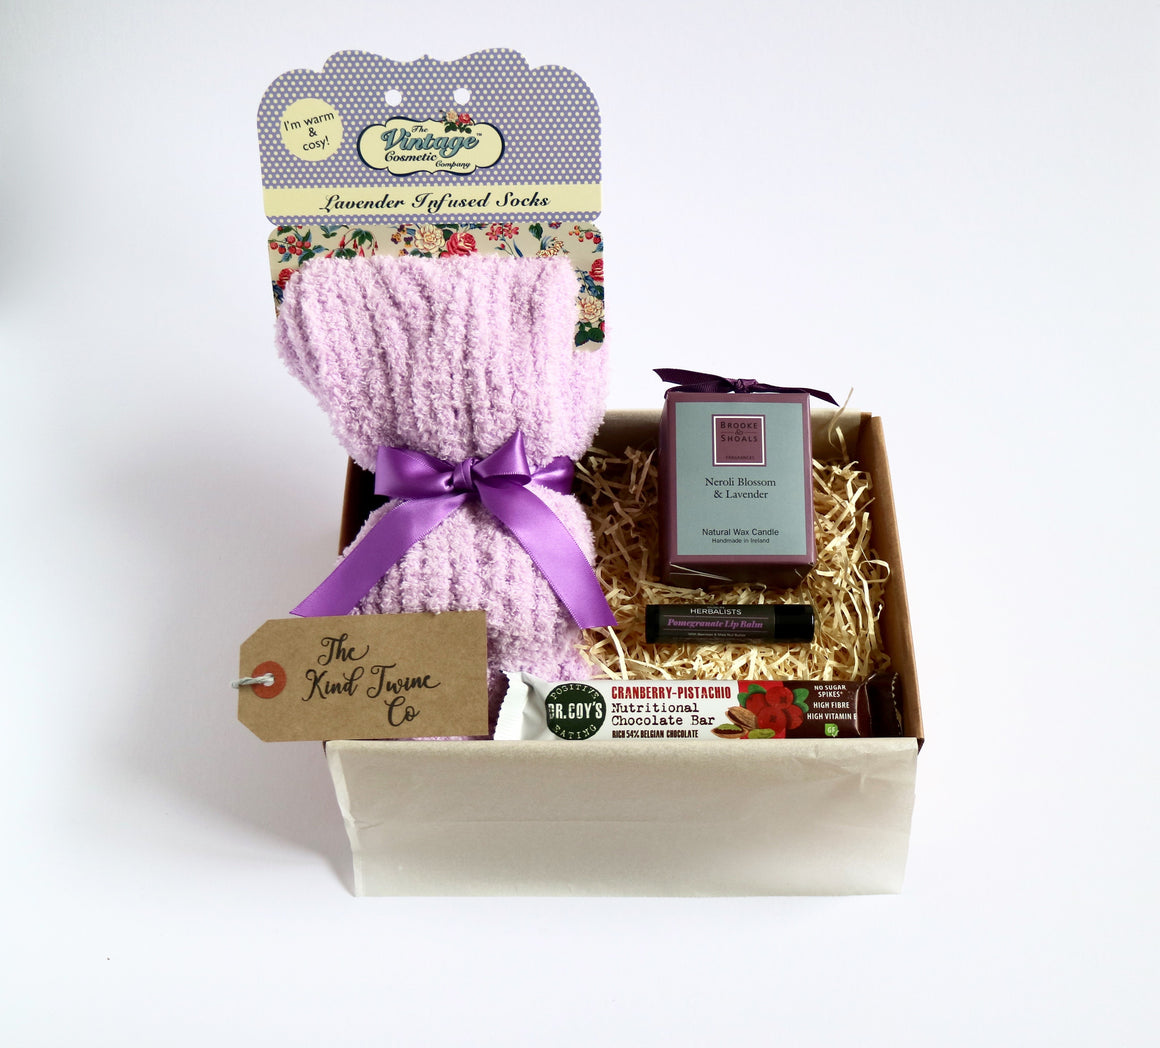 send a smile gift box cosy socks women's candle